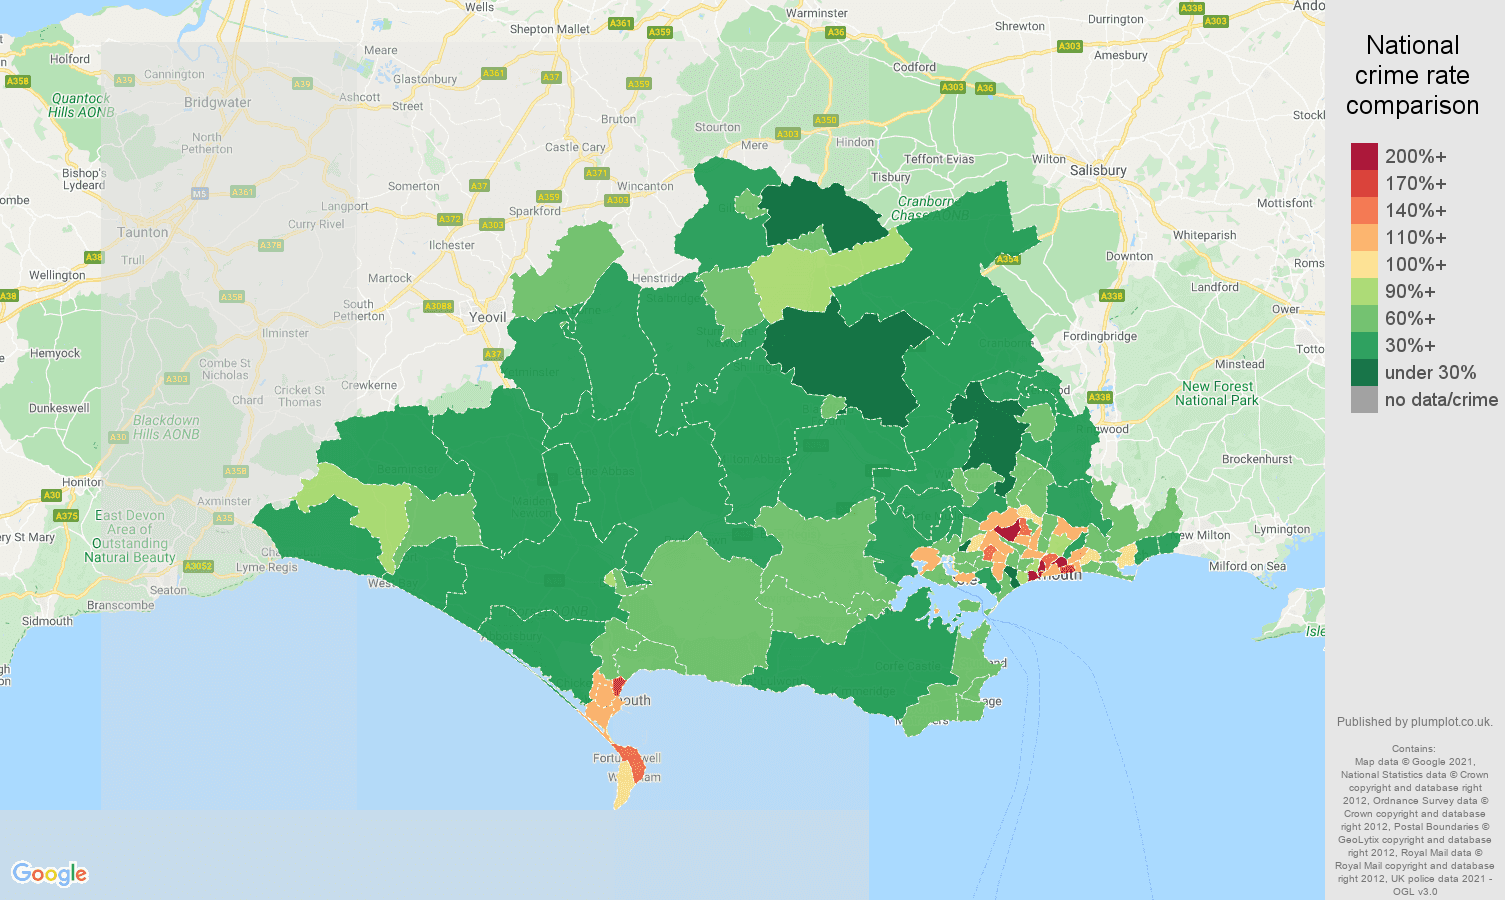 Dorset violent crime rate comparison map